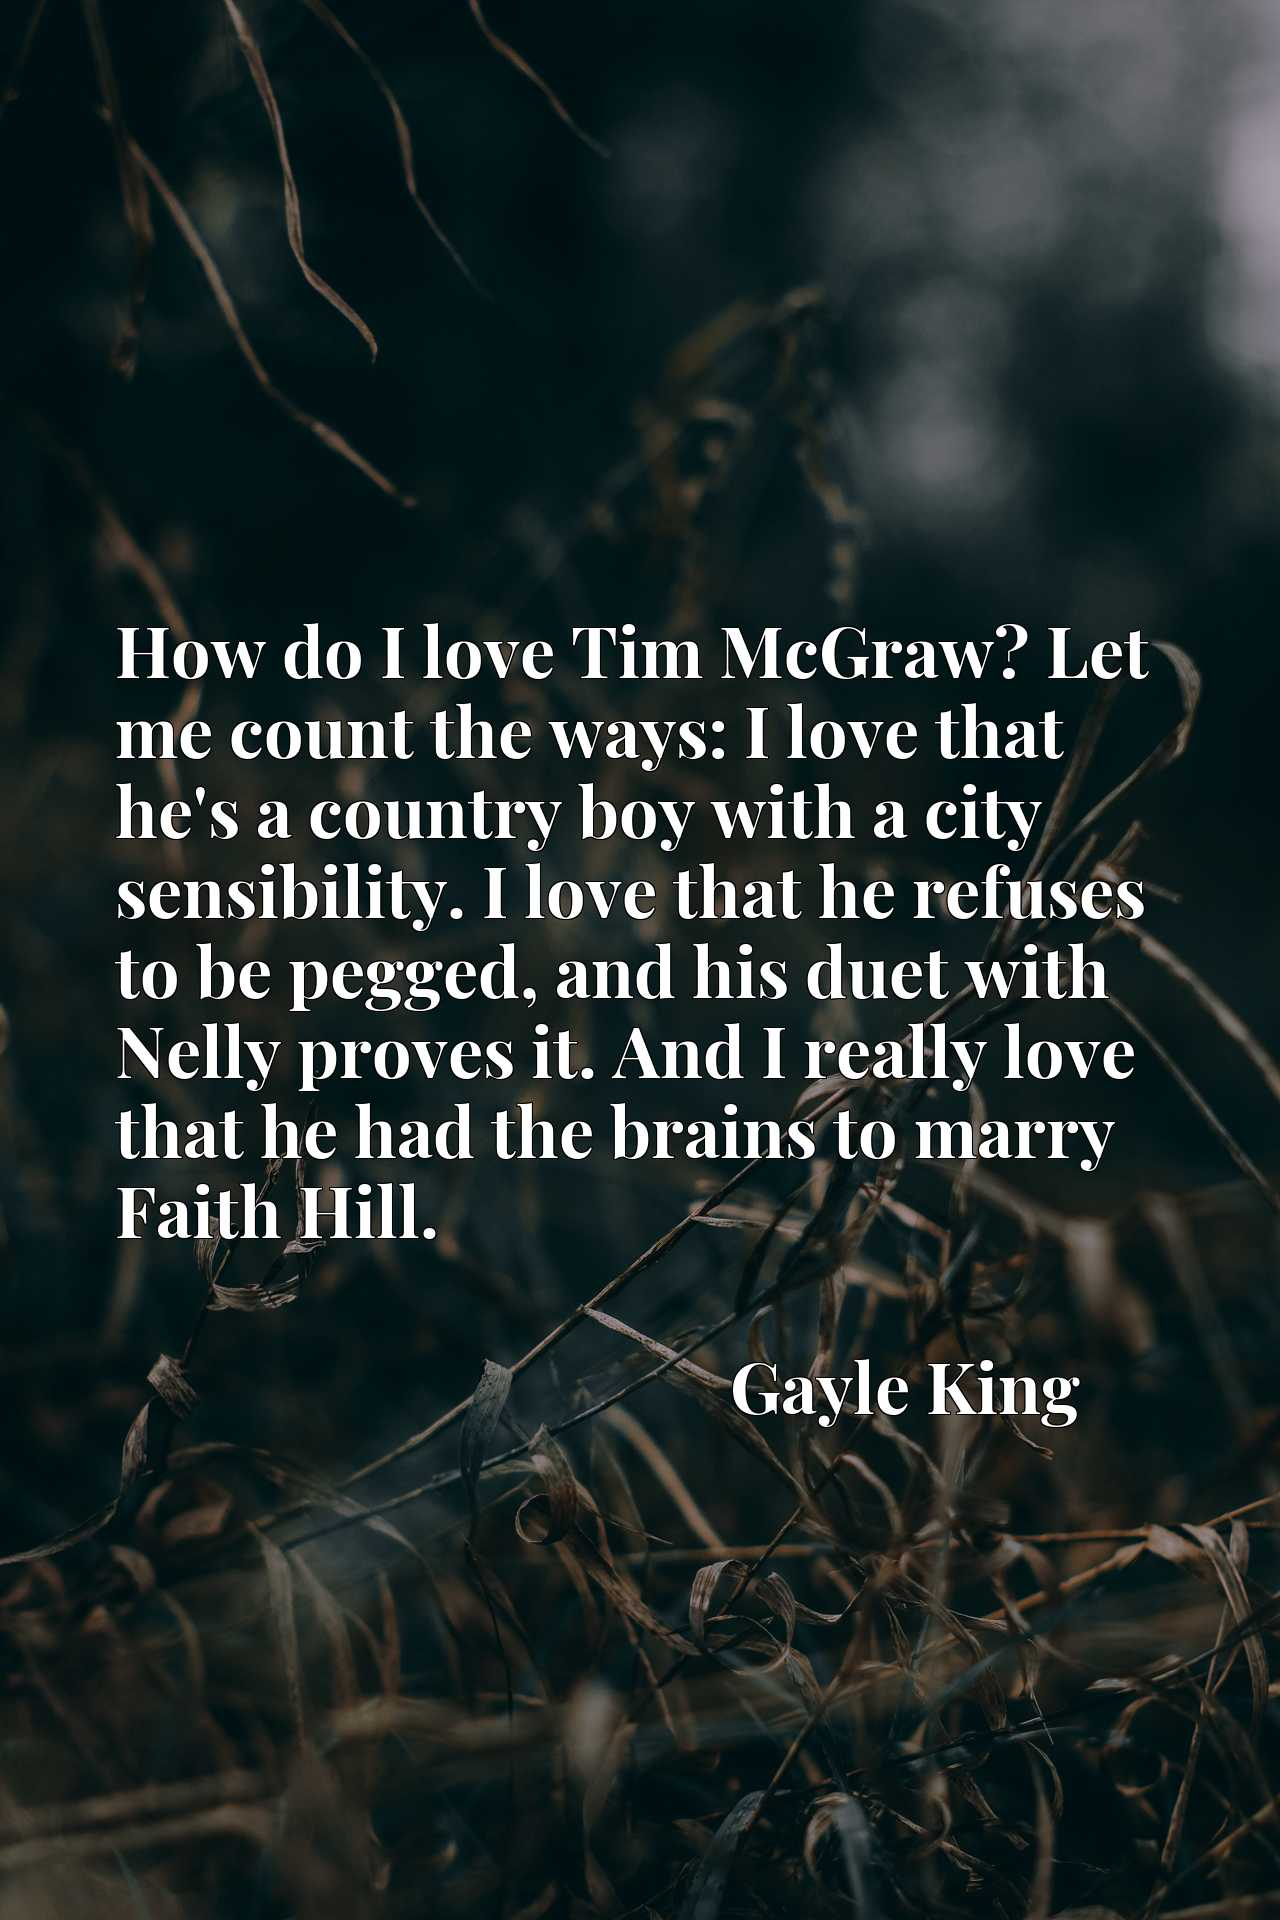 How do I love Tim McGraw? Let me count the ways: I love that he's a country boy with a city sensibility. I love that he refuses to be pegged, and his duet with Nelly proves it. And I really love that he had the brains to marry Faith Hill.